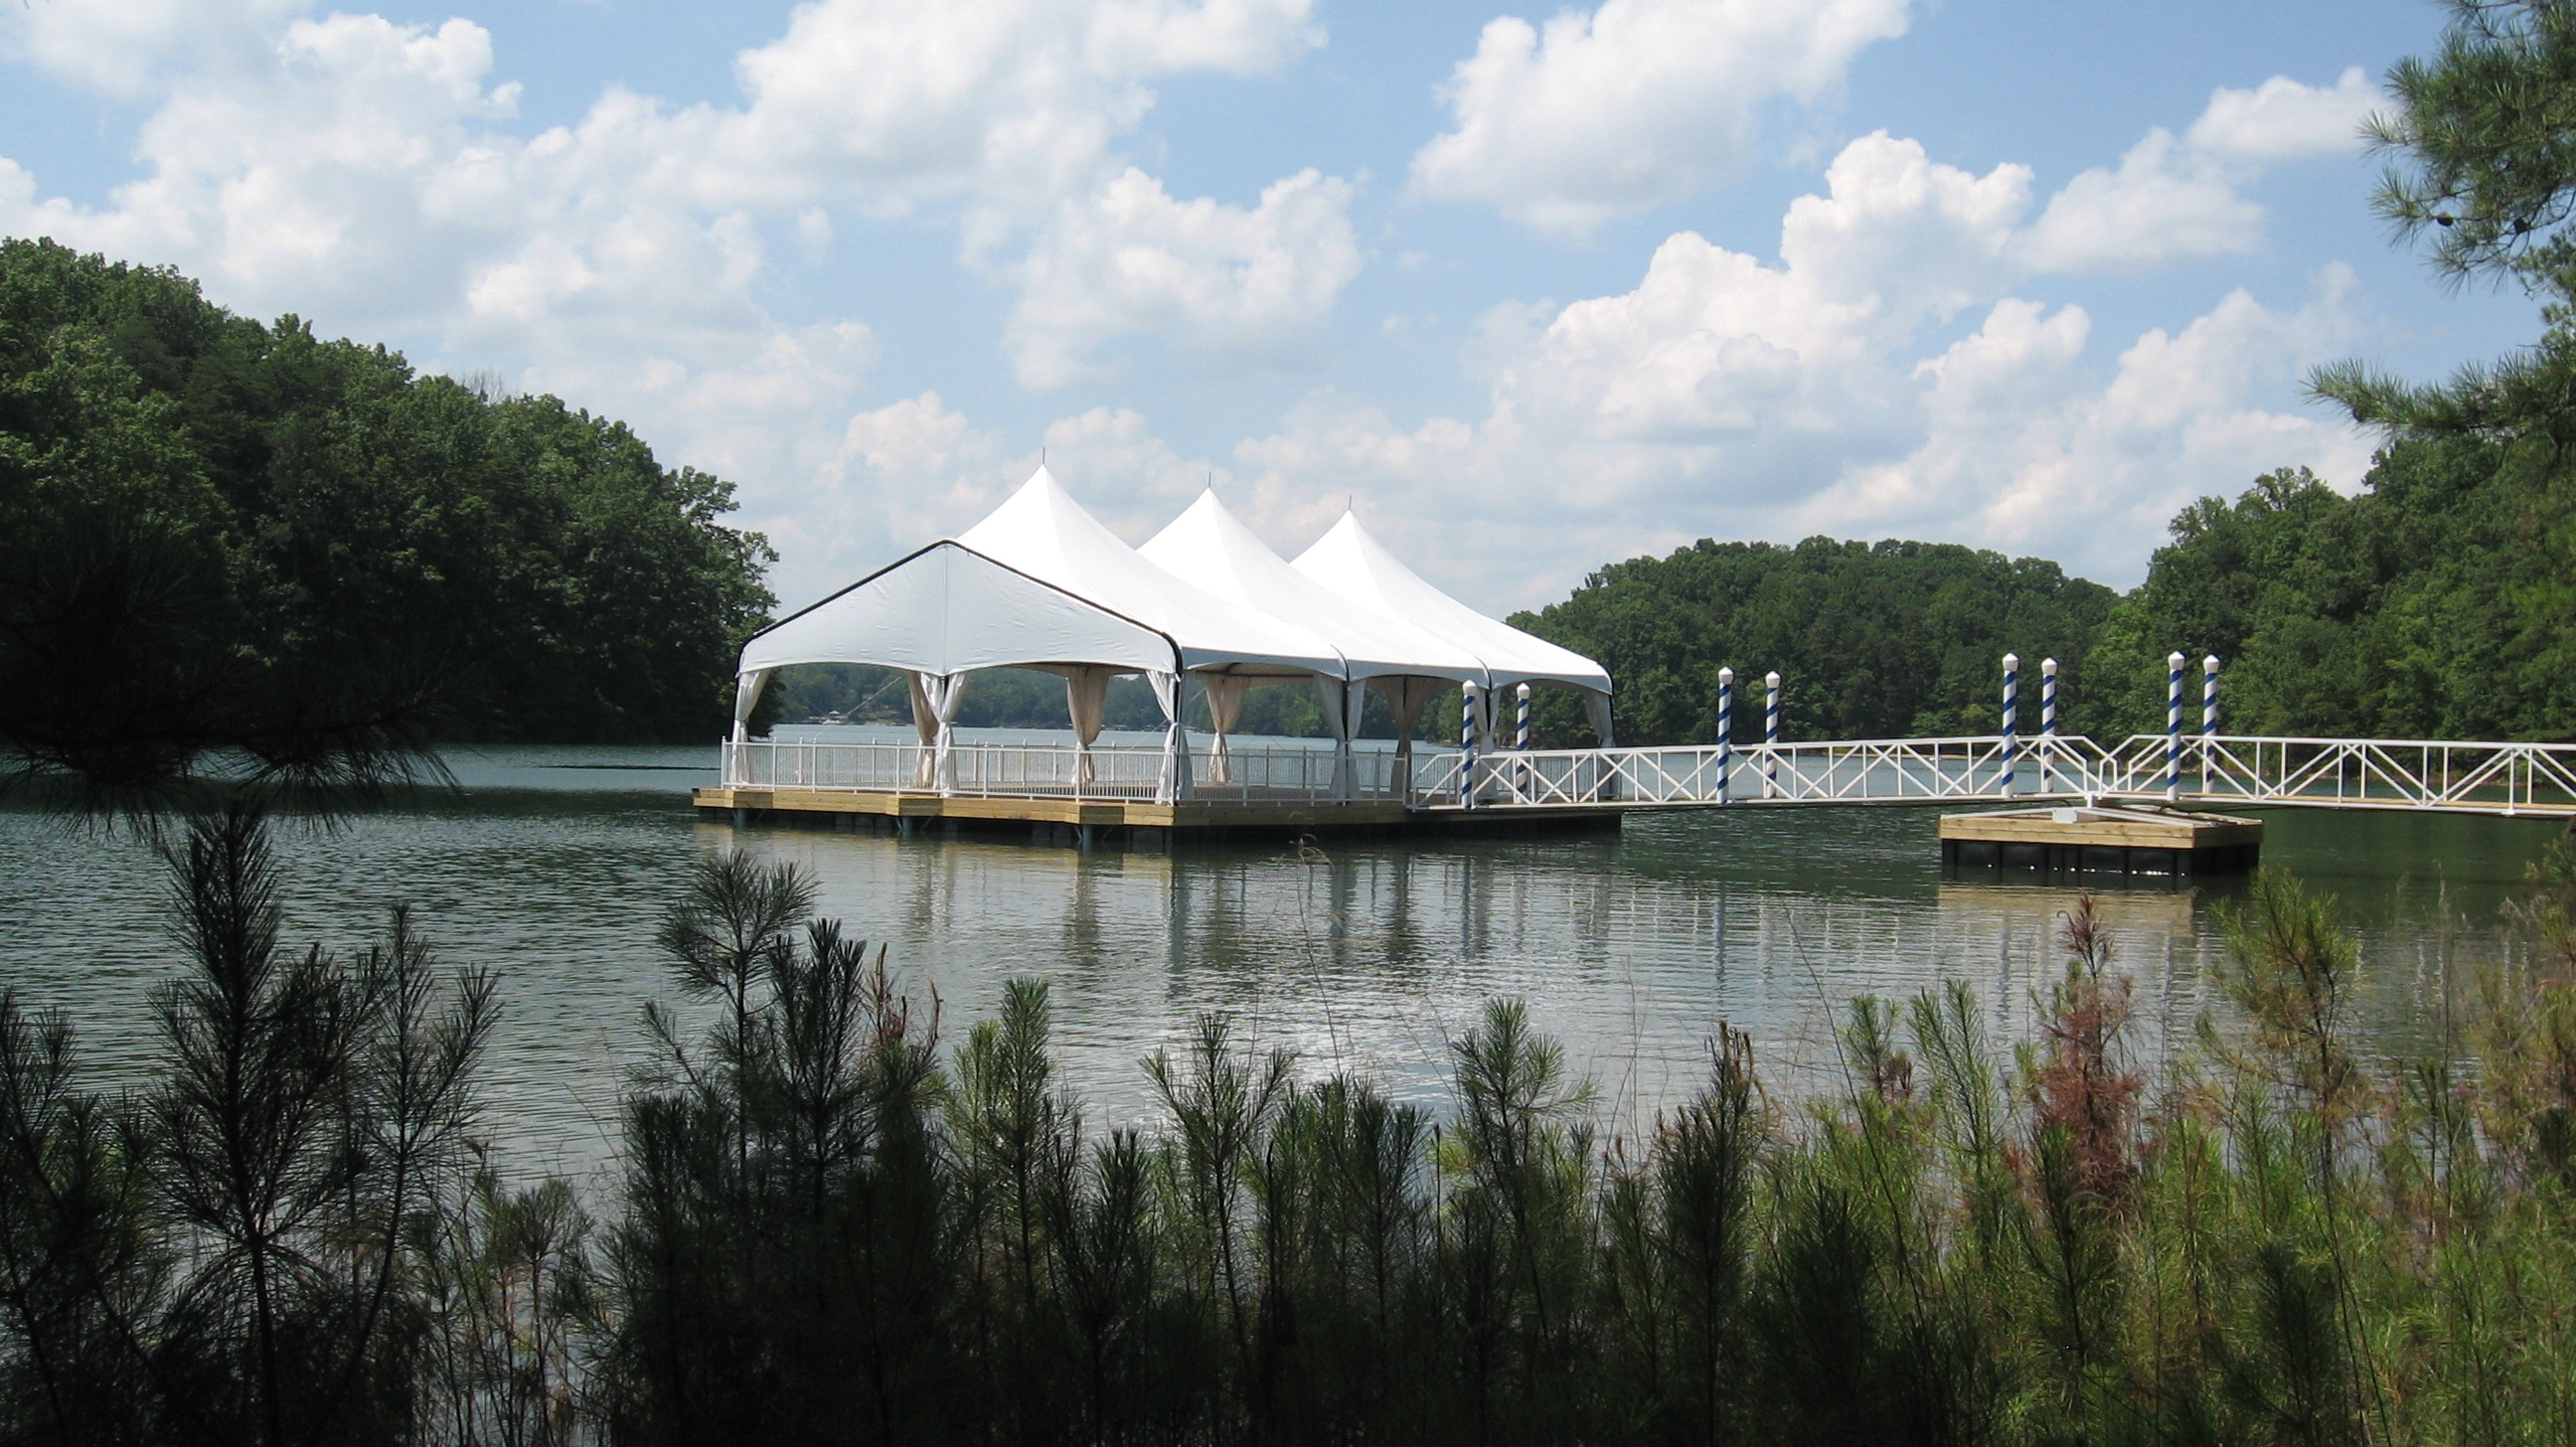 Tent with peaks on a floating lake pavilion